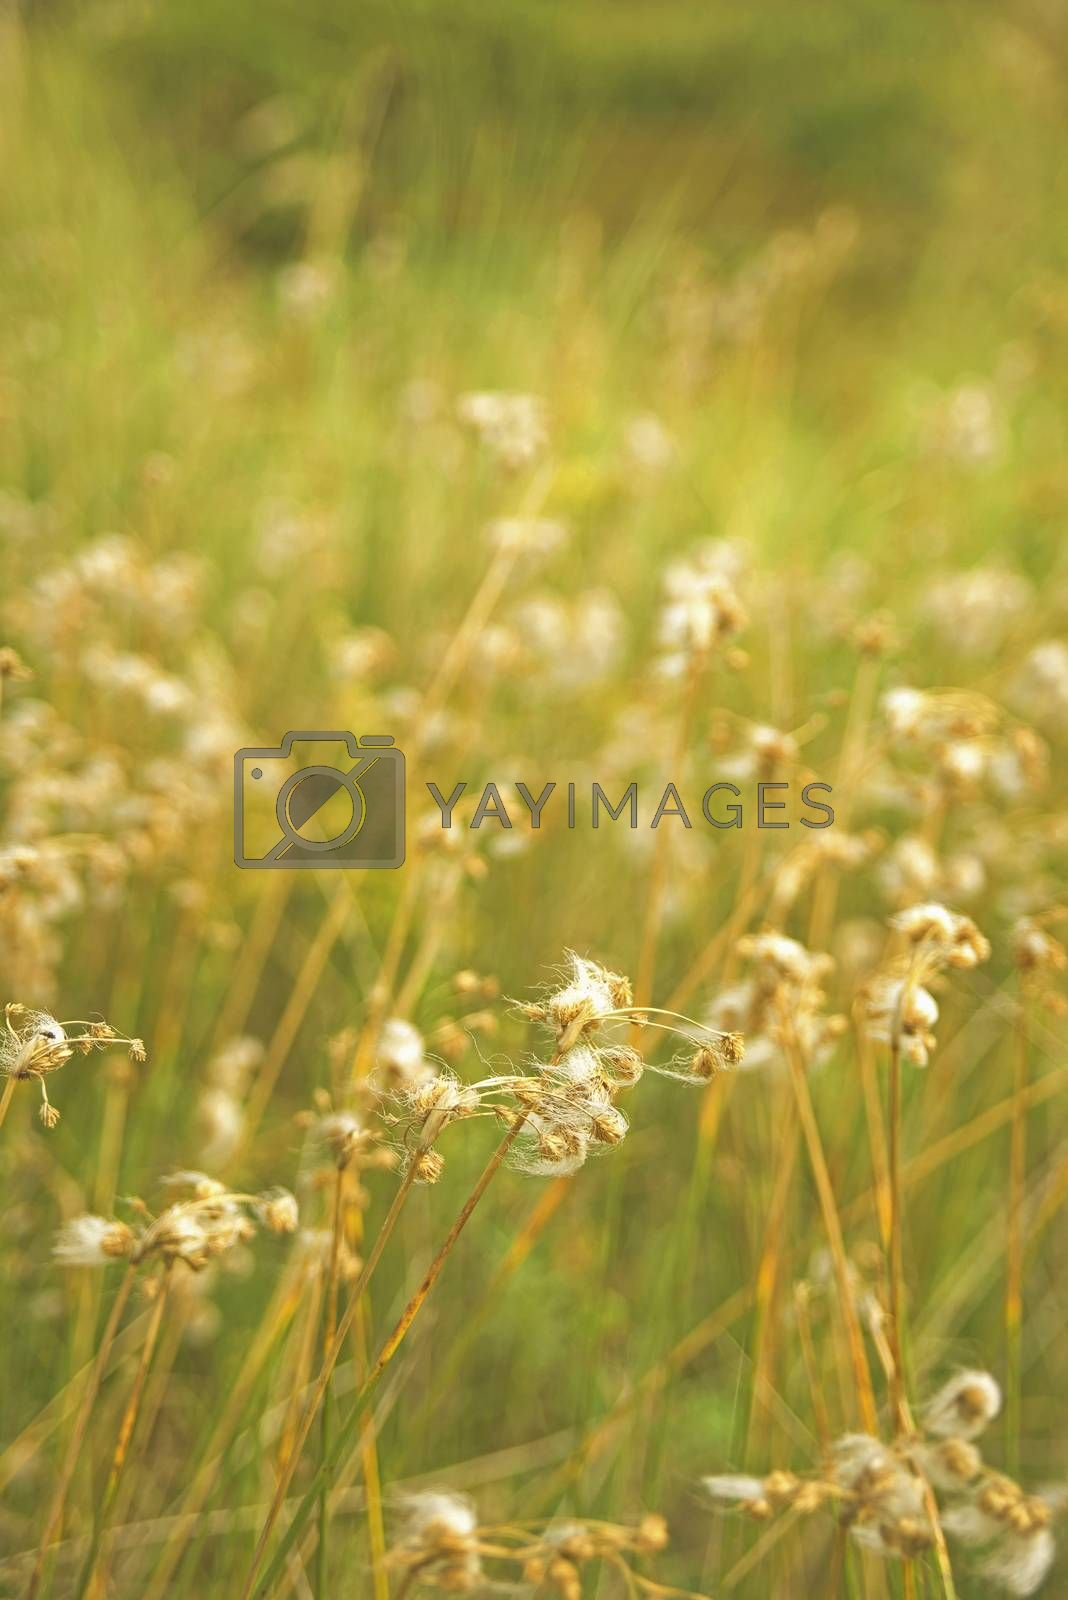 Sunny day in the countryside, closeup of green grass and wild flowers with vintage filter effect and blur background.